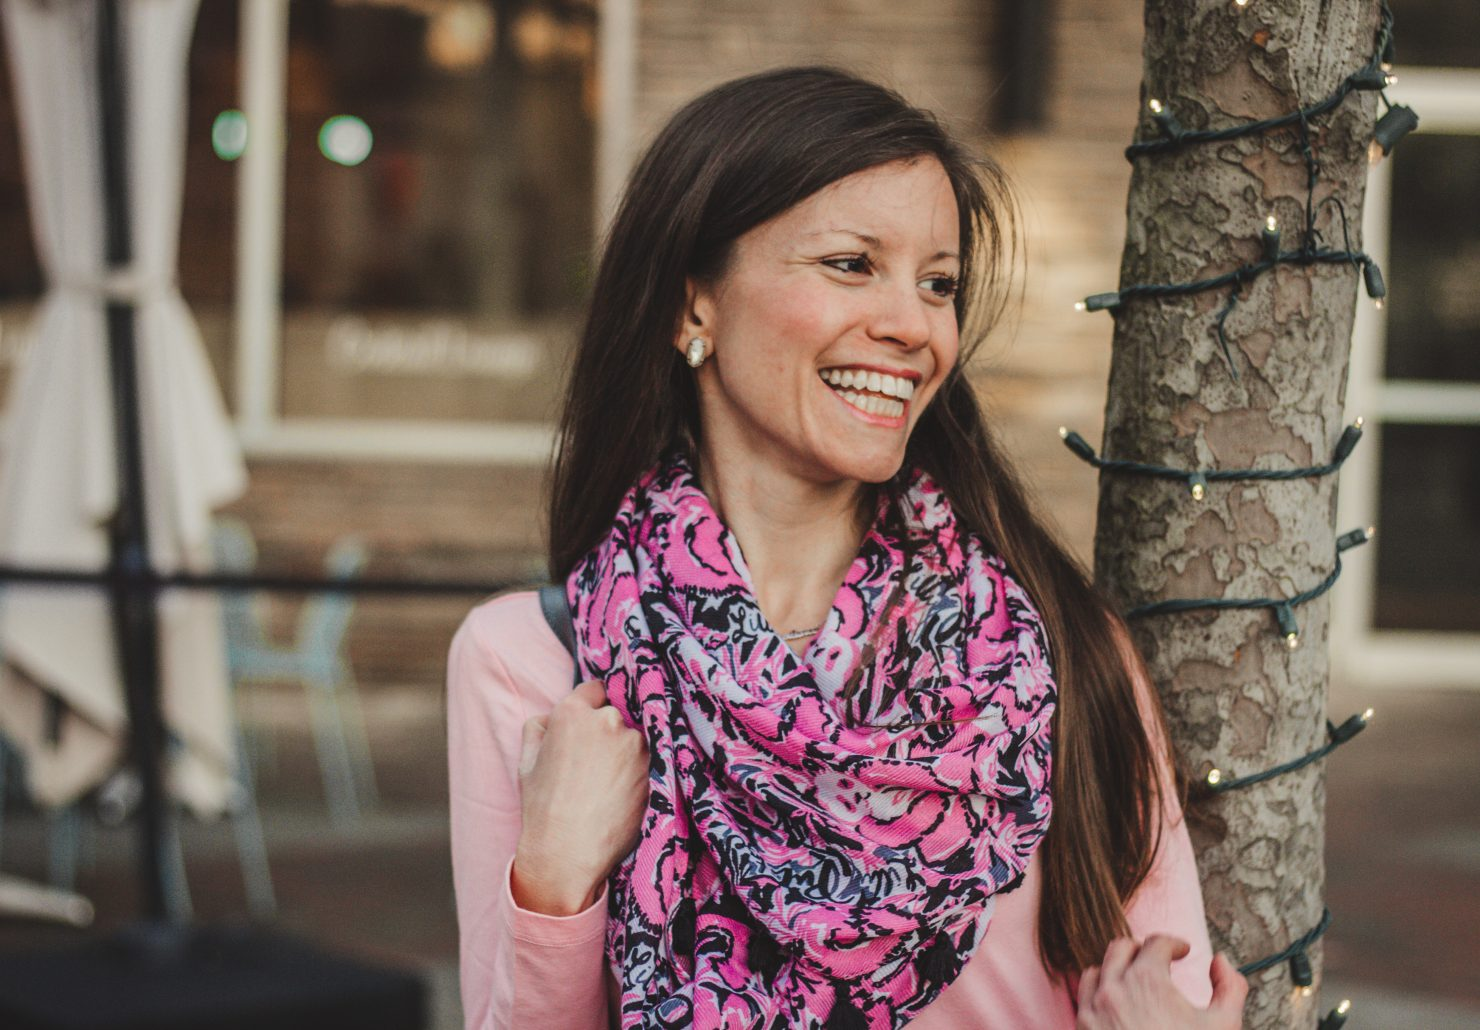 Styling a Lilly Pulitzer Scarf